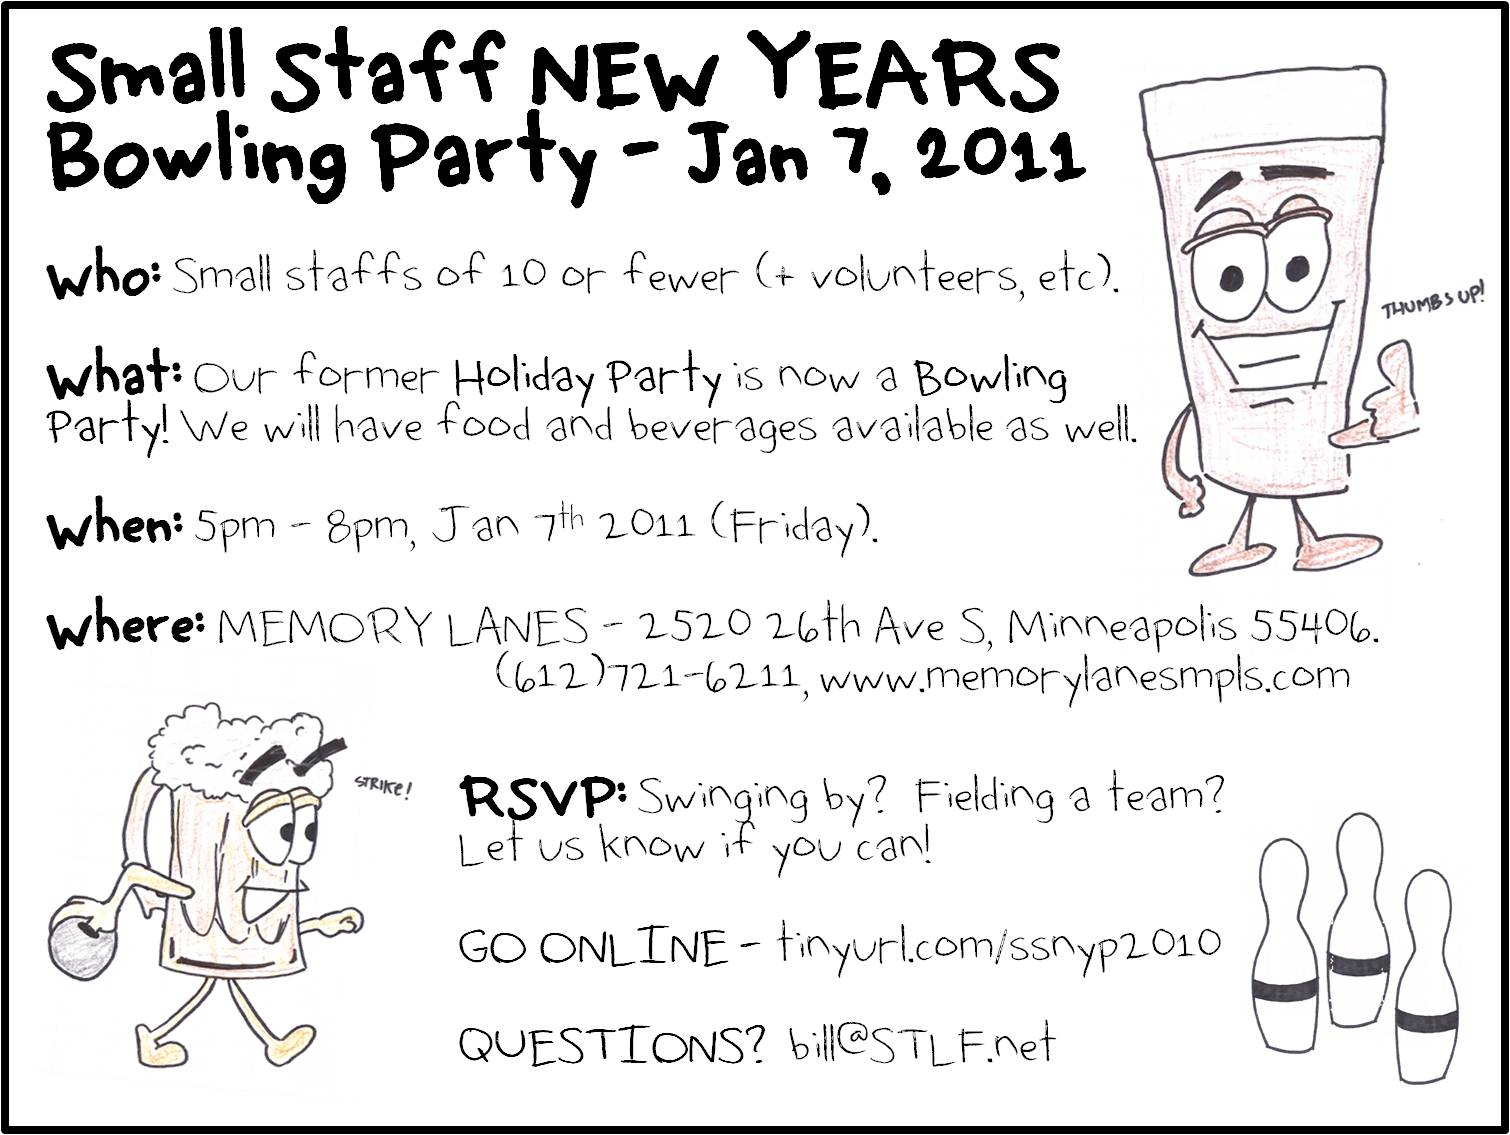 Small Staff NEW YEARS Bowling Party! | Minnesota Rising